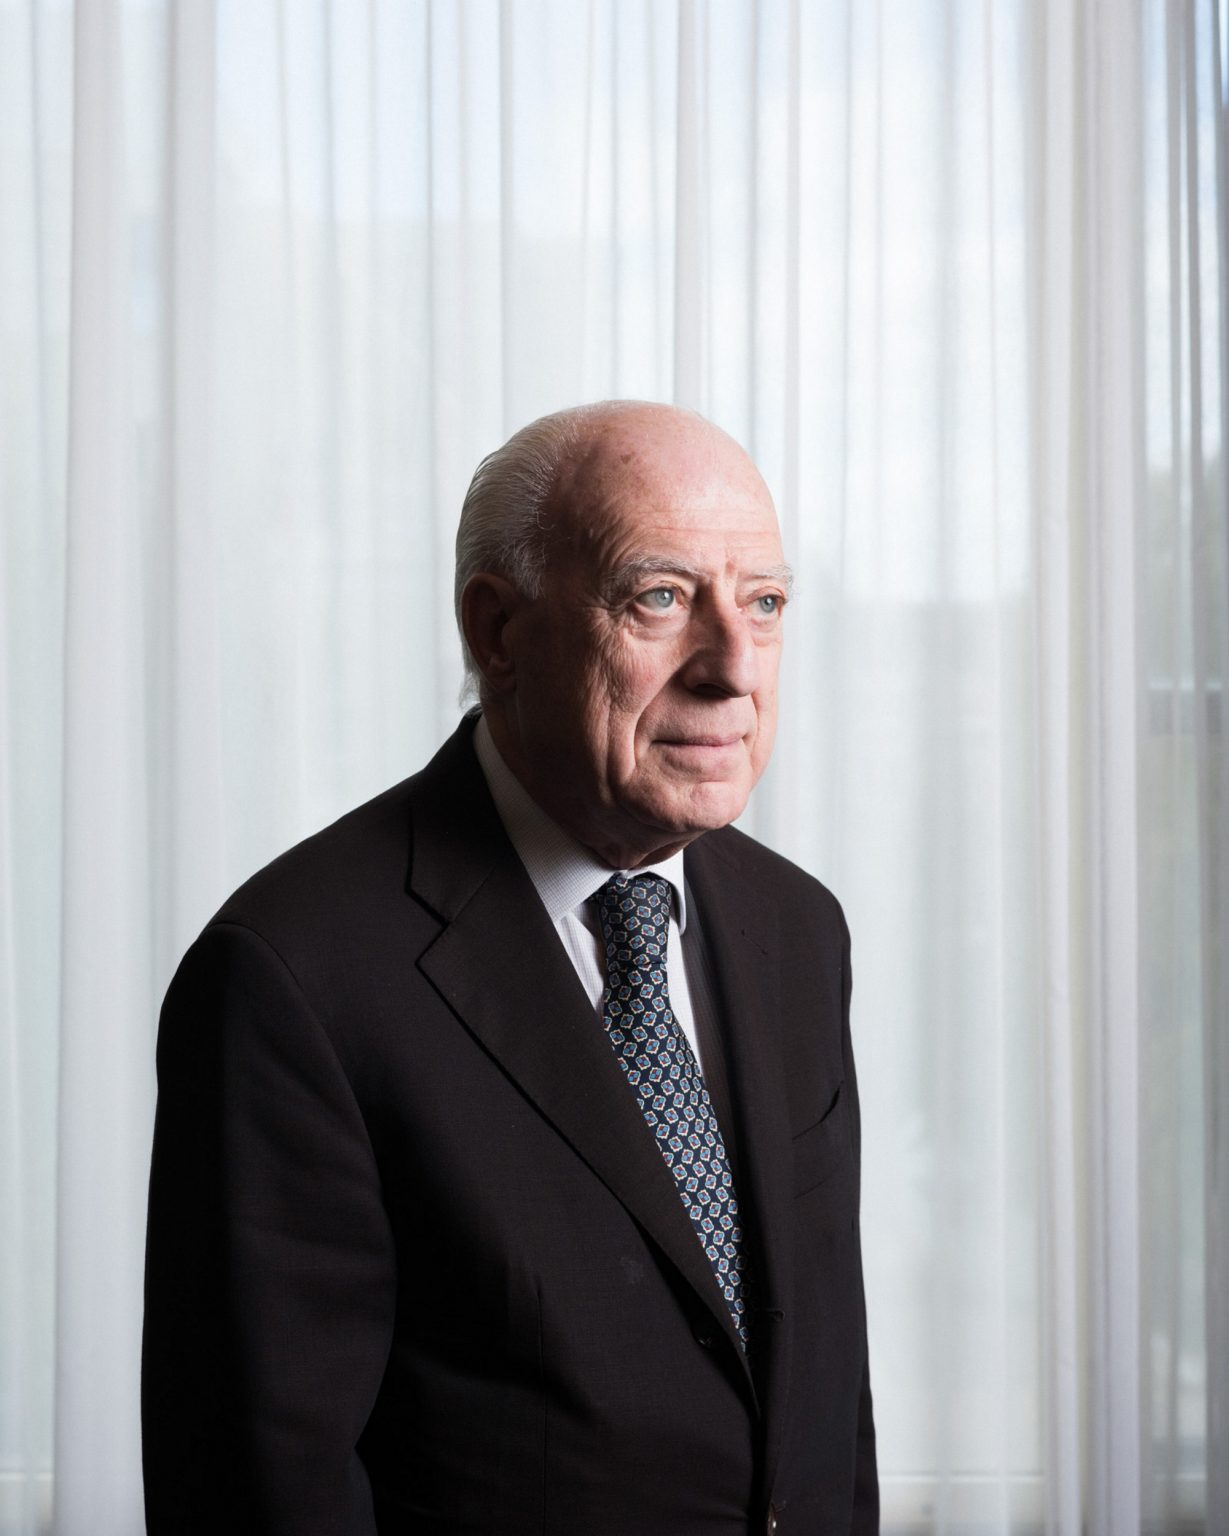 ICTY, International Criminal Tribunal for the former Yugoslavia, The Hague, The Netherlands, 2017. Judge Fausto Pocar Fausto Pocar (Italy) works as a judge at the ICTY since 2000. He was the president when Slobodan Milosevic died in prison, in The Hague. 'We were disoriented, as were the people in the Balkans. Our goal, to get the main leaders of the war to justice, had failed. In the meanwhile we received fierce criticism from Serbia, that we didn't treat him well in prison. Well, it was the opposite: Milosevic didn't want to be treated. He didn't take his pills, he tried to be more sick.'